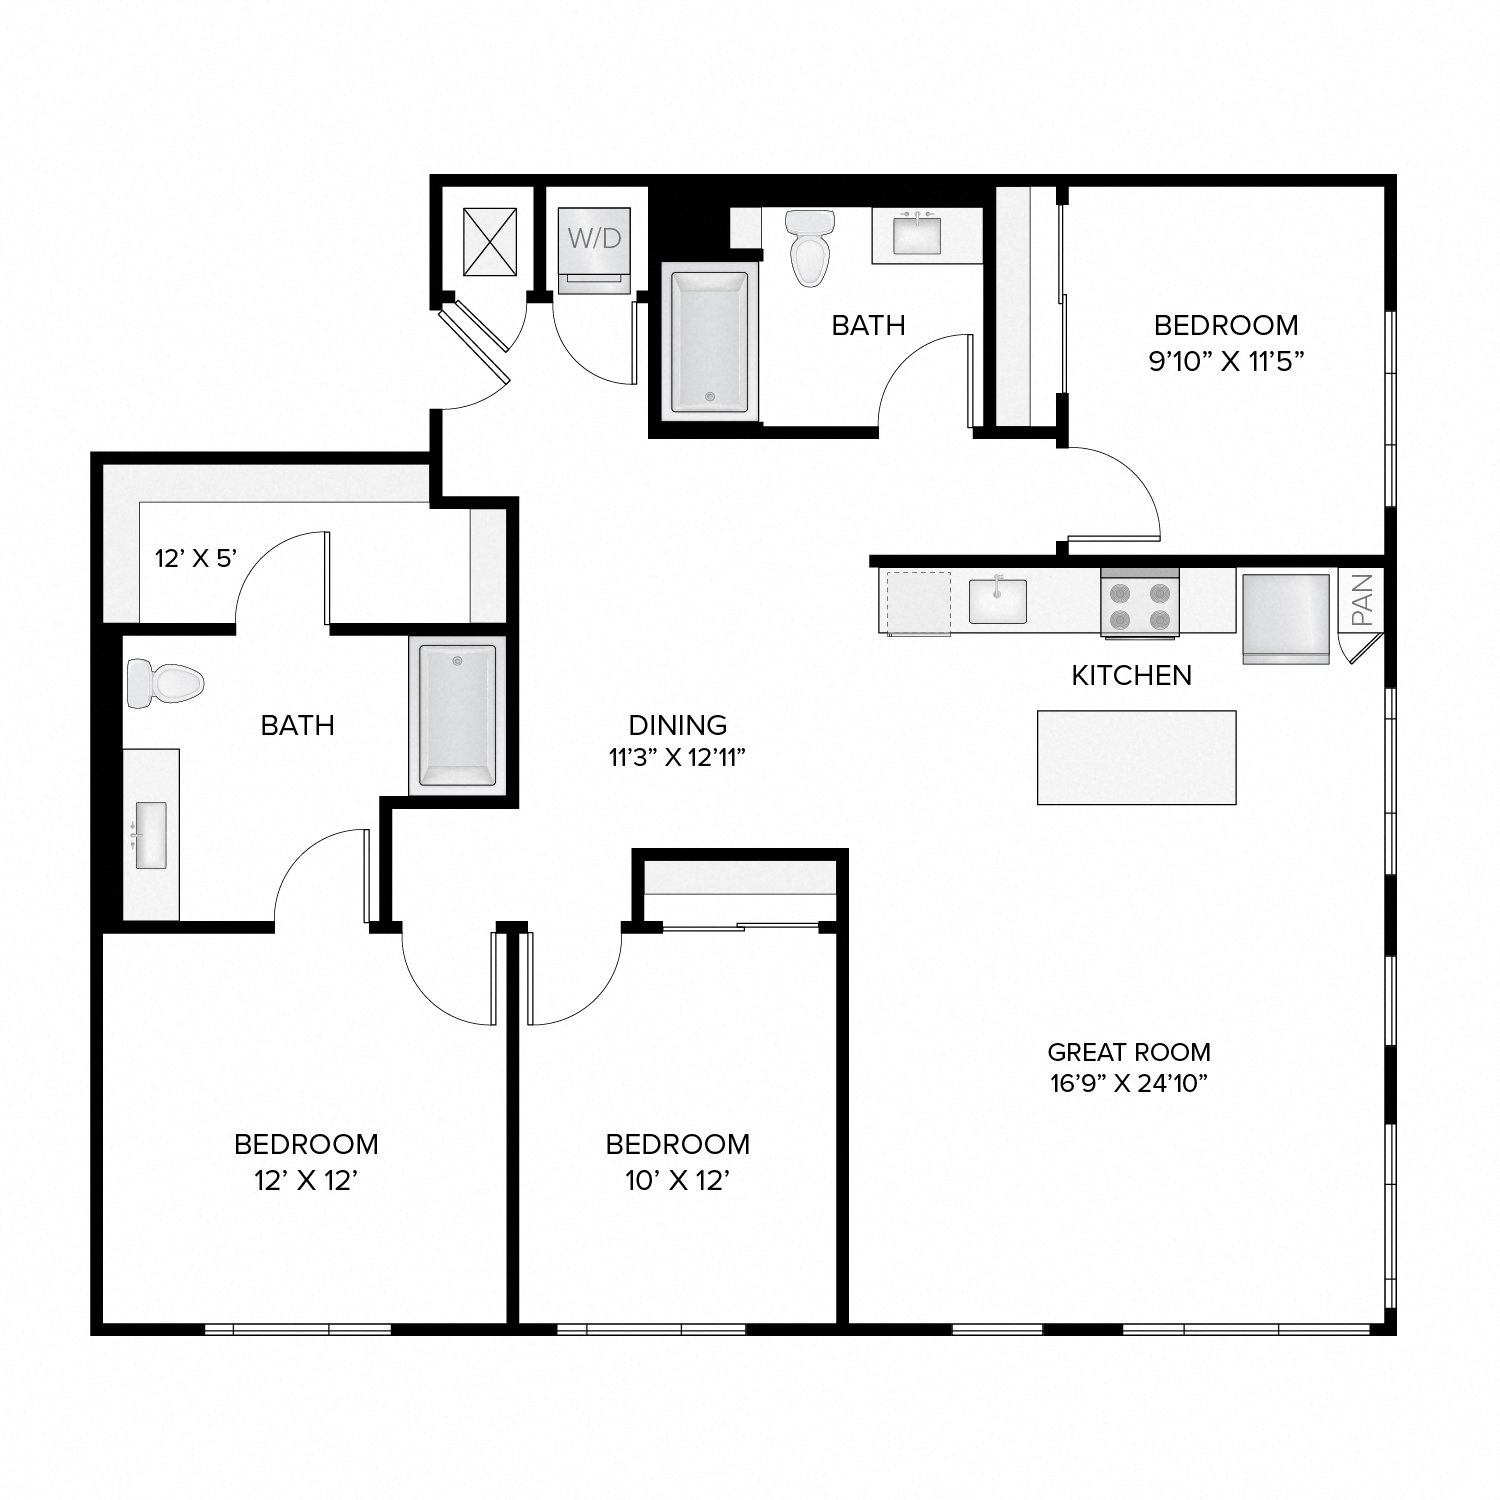 Diagram of the Fallon Deluxe Reverse floor plan. Three bedrooms, two bathrooms, an open kitchen and living area, and a washer dryer.